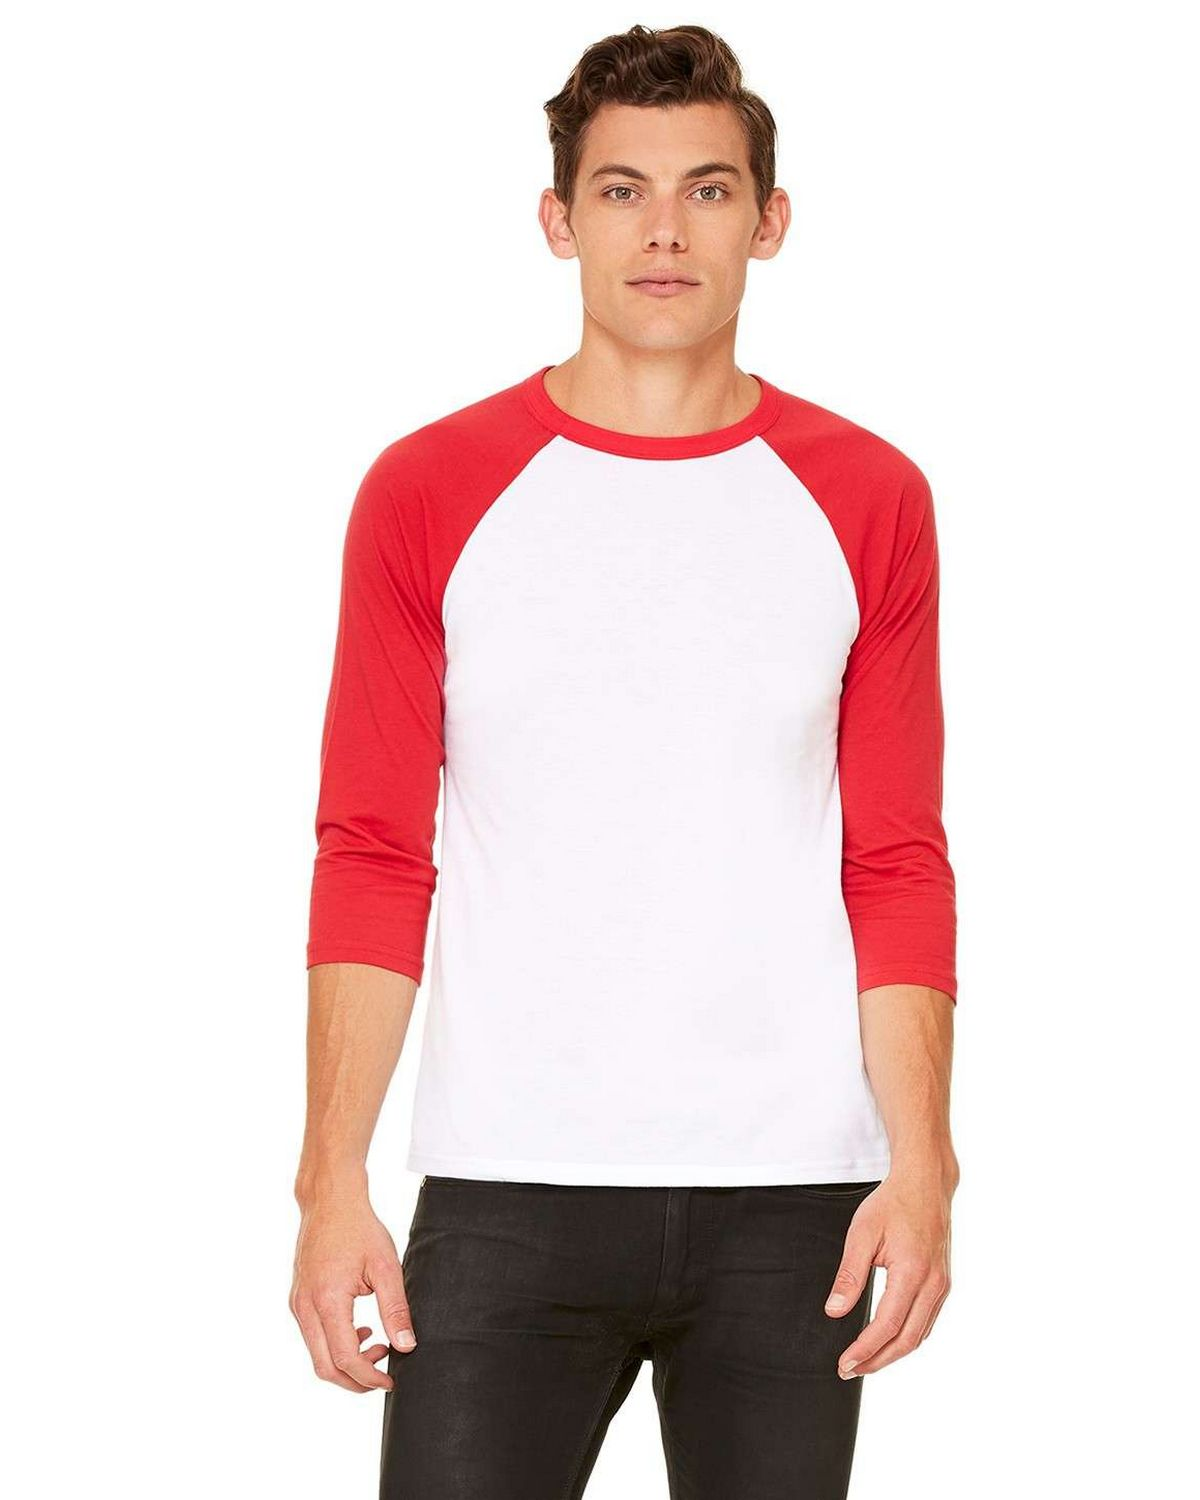 Bella + Canvas C3200 3/4-Sleeve Blended Unisex Baseball Tee - White/Red - S from Bella + Canvas